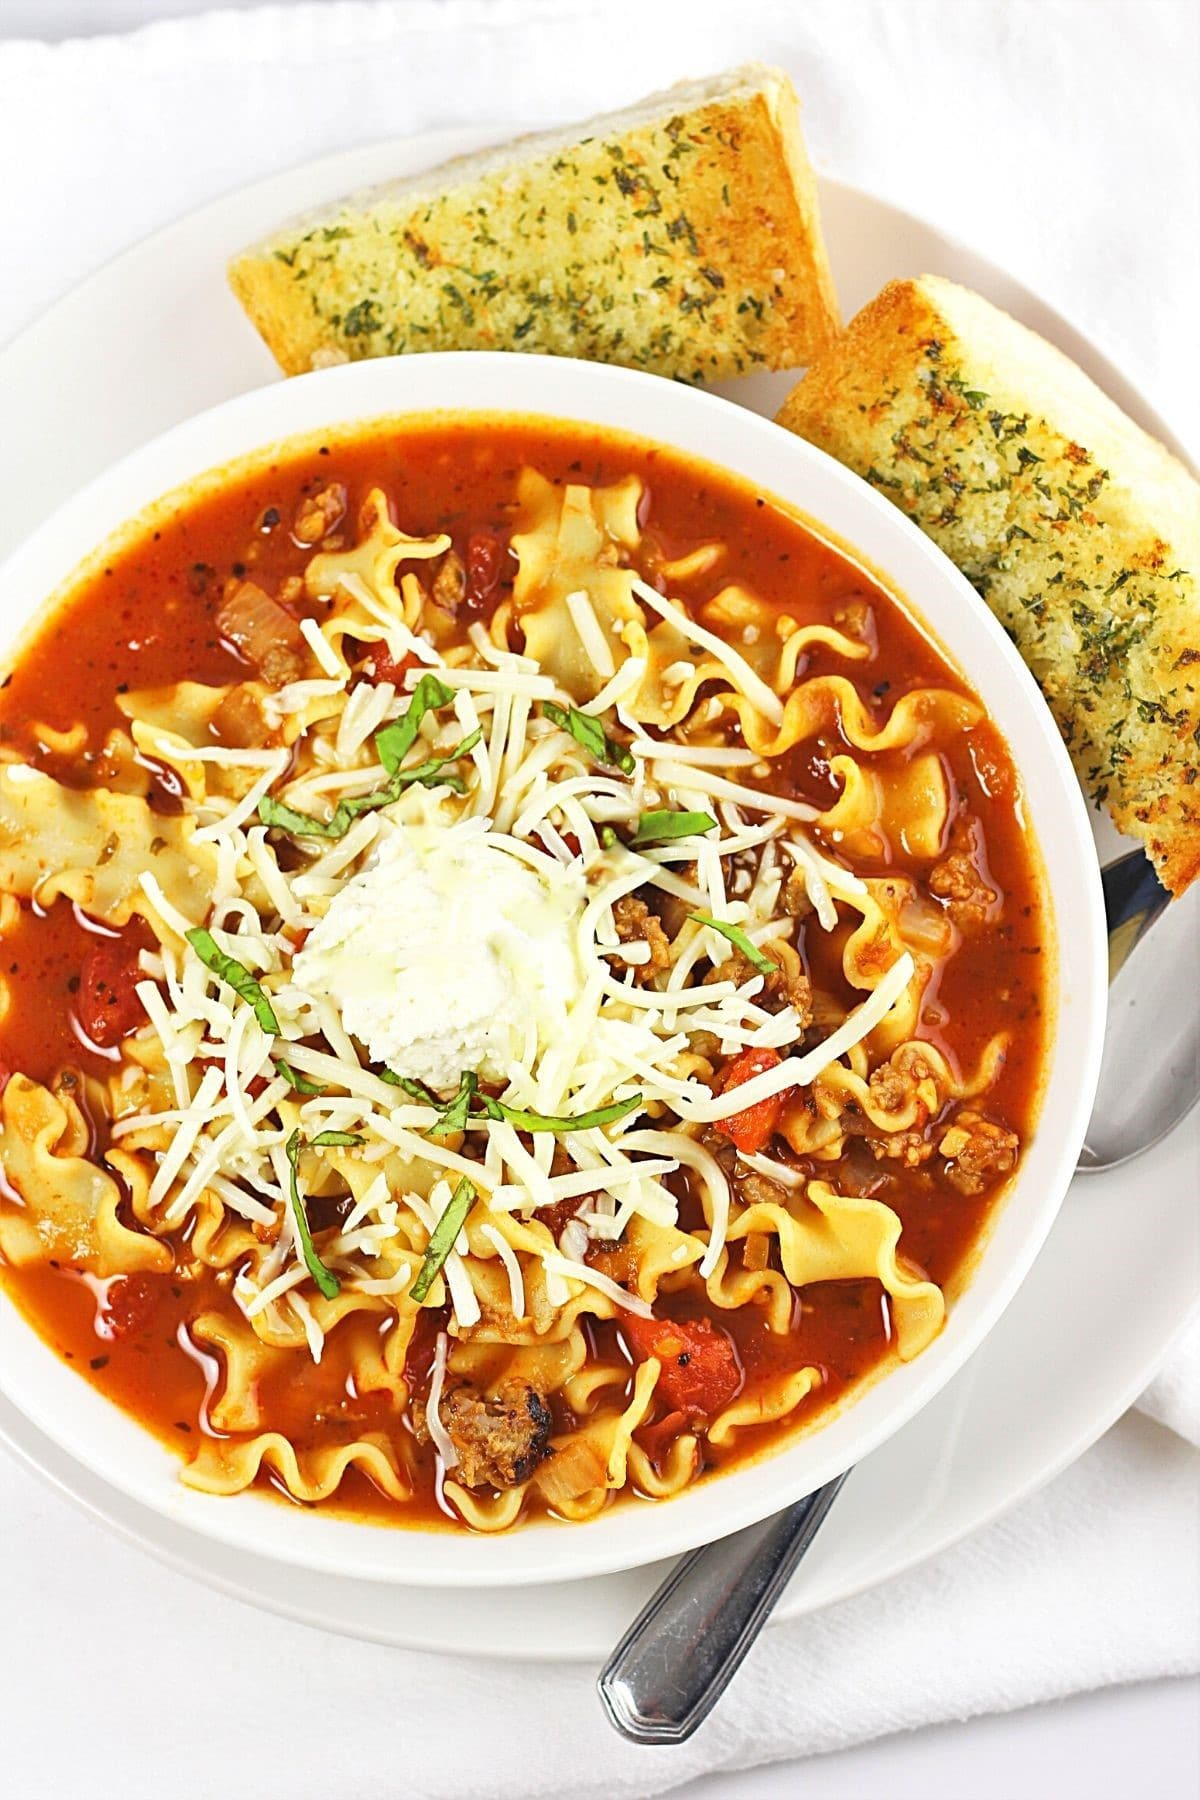 bowl of lasagna soup garnished with strips of basil with a spoon and pieces of garlic bread on the side